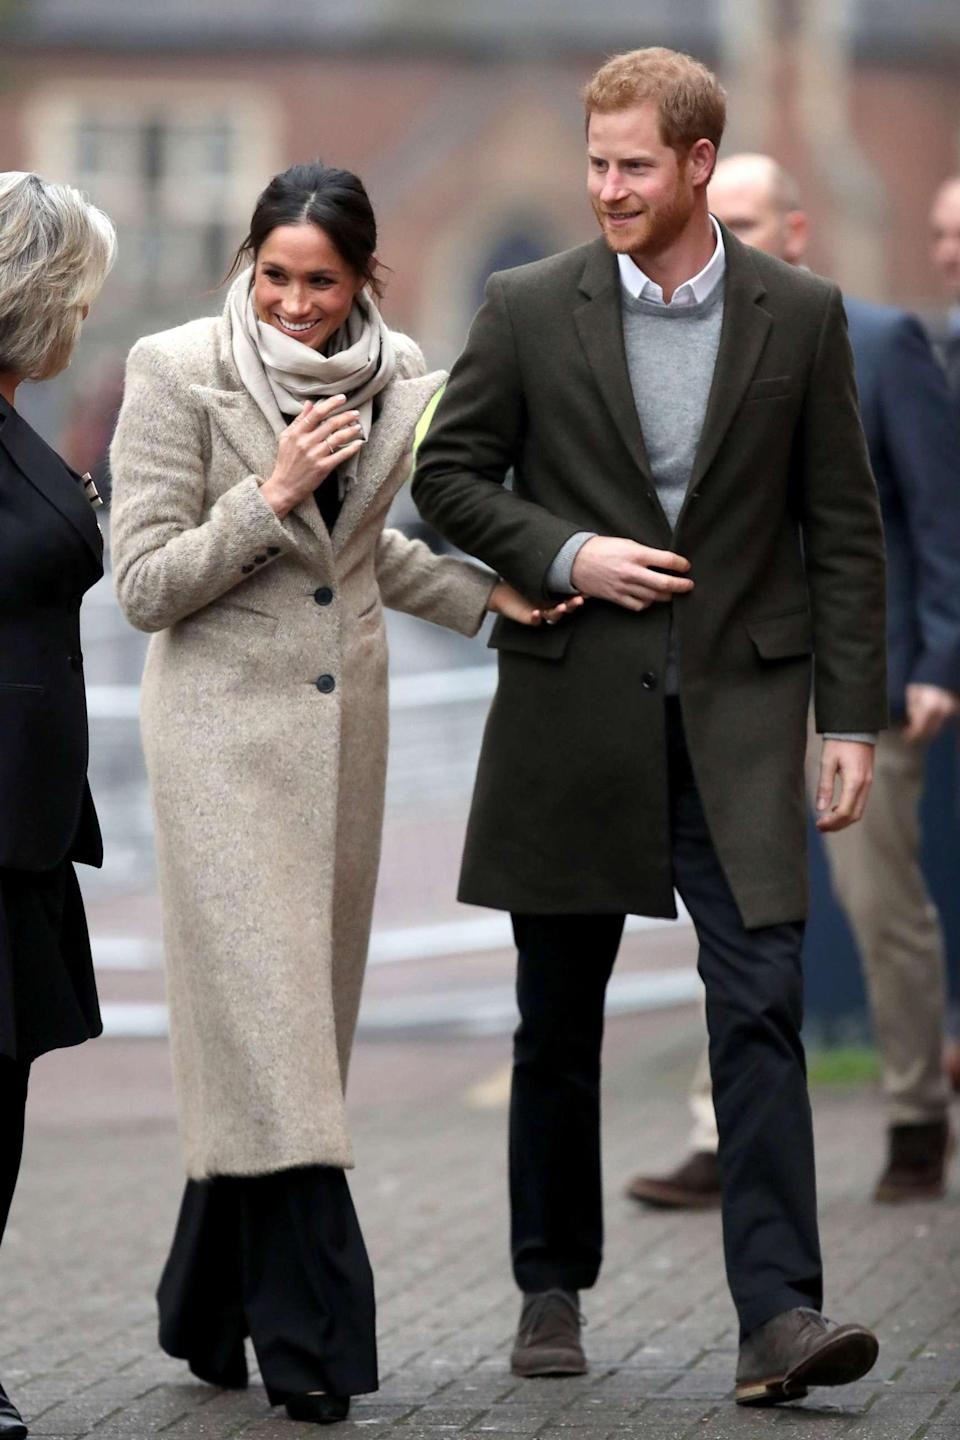 Prince Harry and Meghan Markle step out together for their second official appearance since their engagement. (Photo: Getty Images)